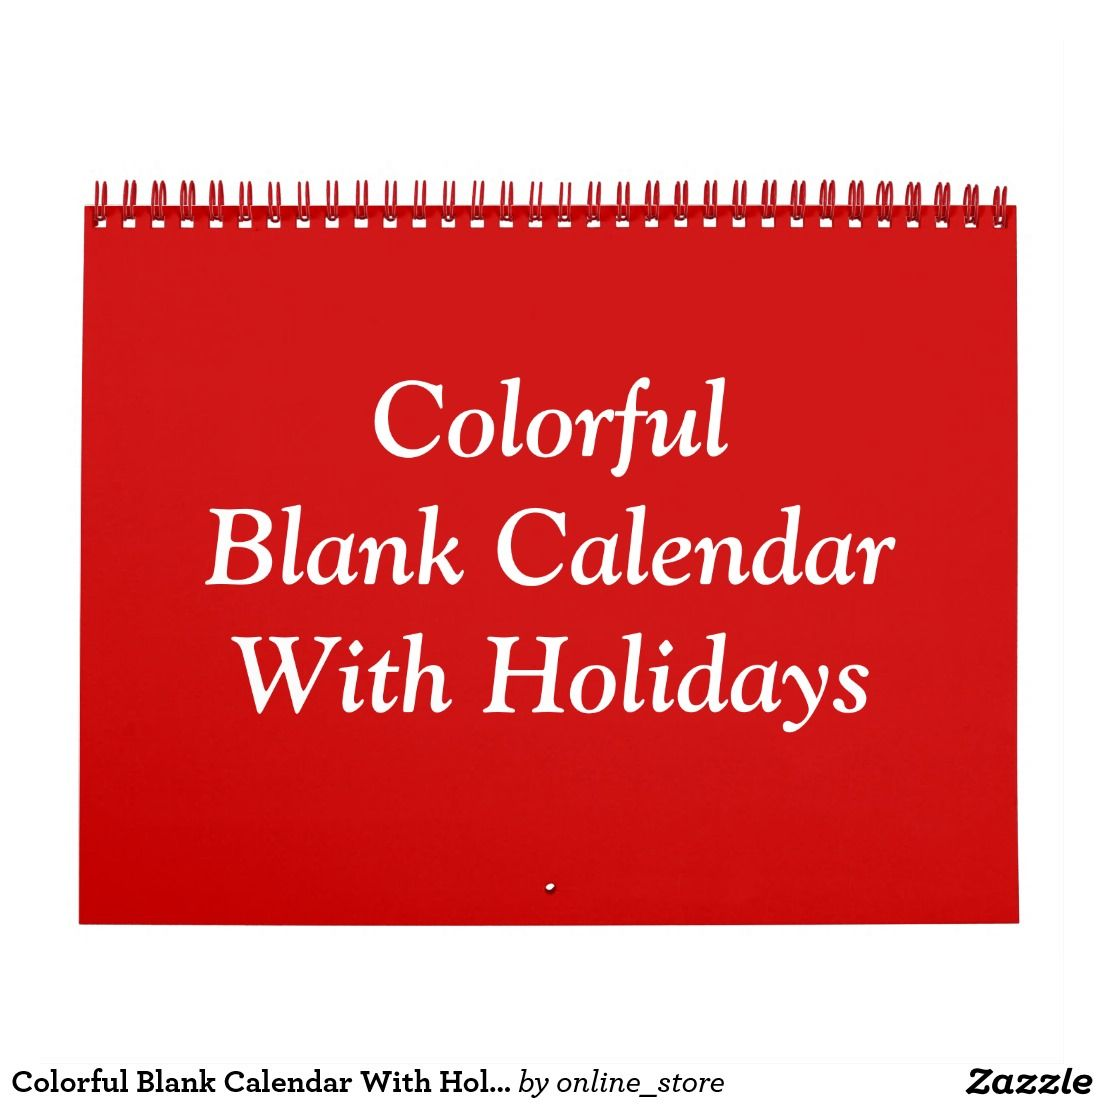 Colorful Blank Calendar With Holidays